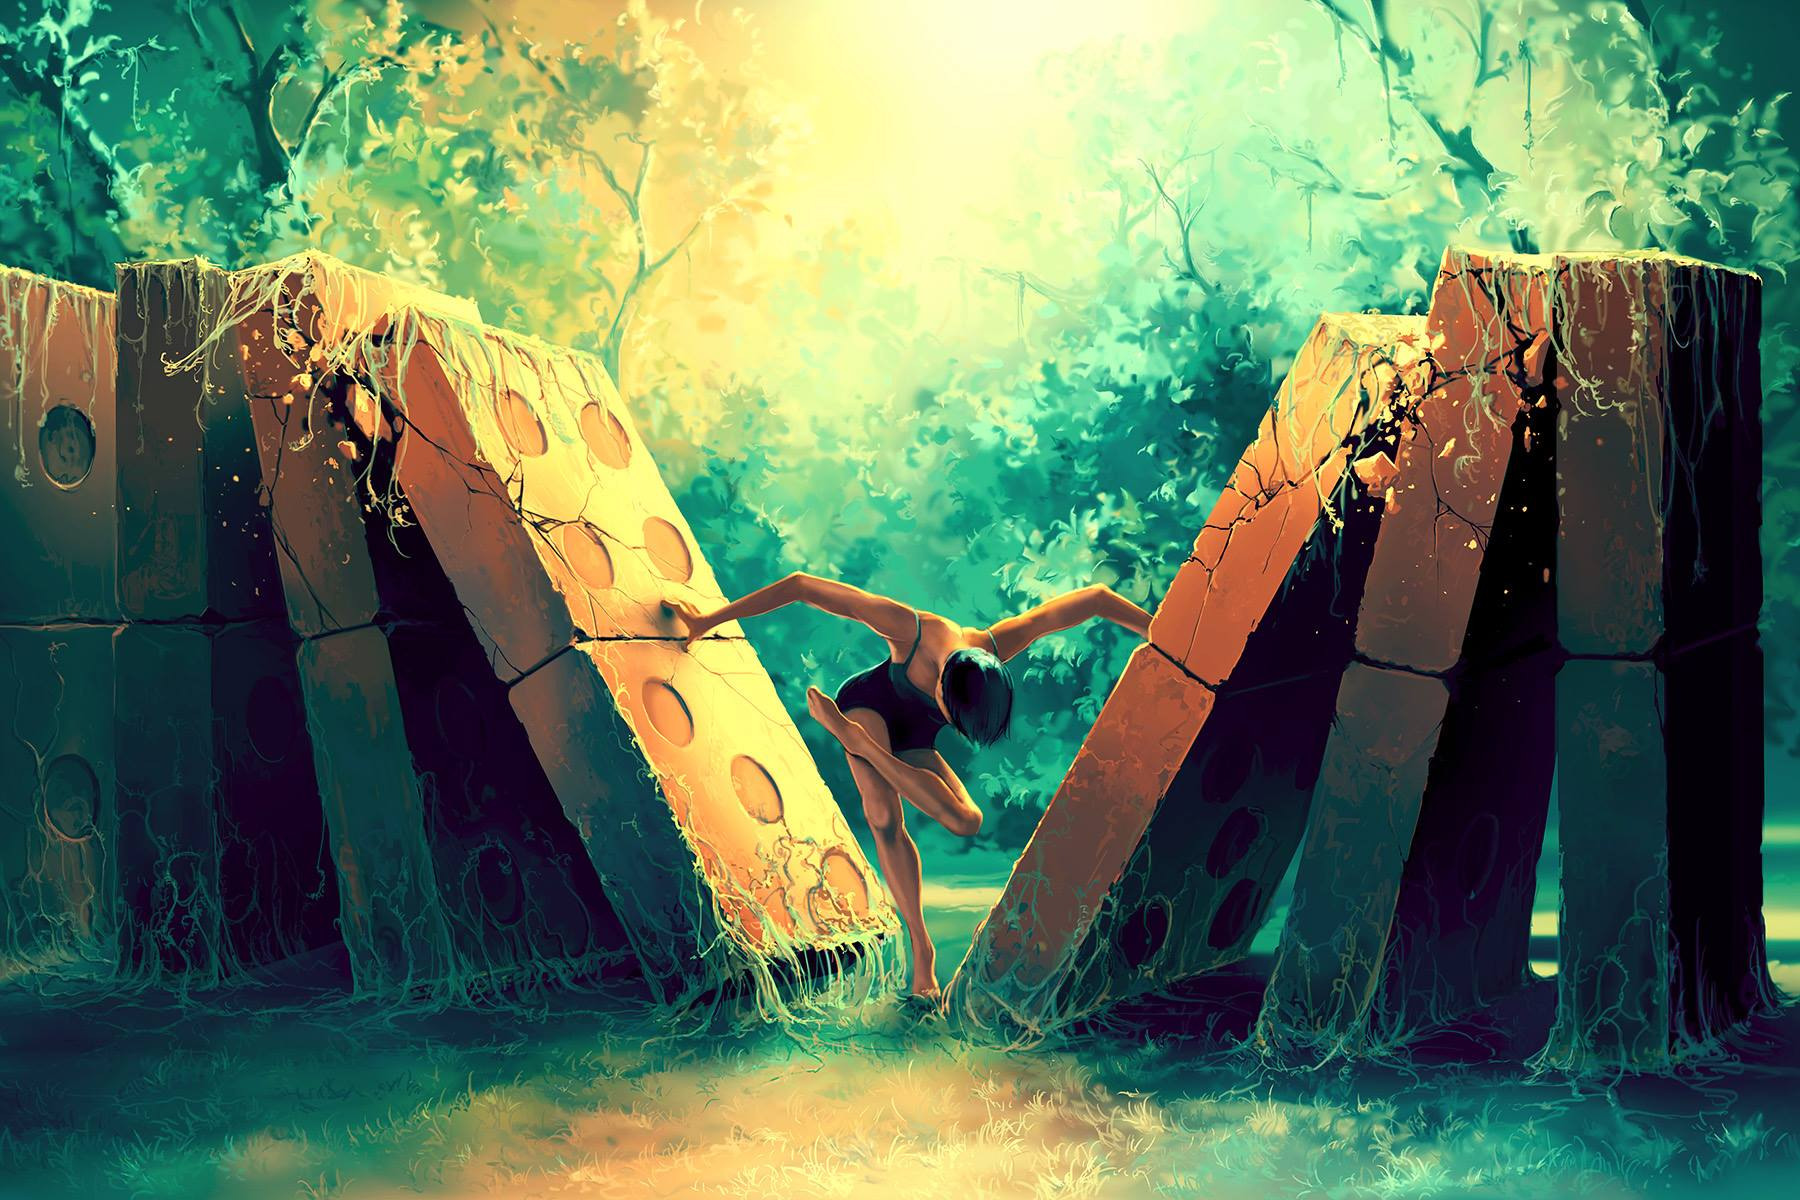 Dominos © Cyril Rolando